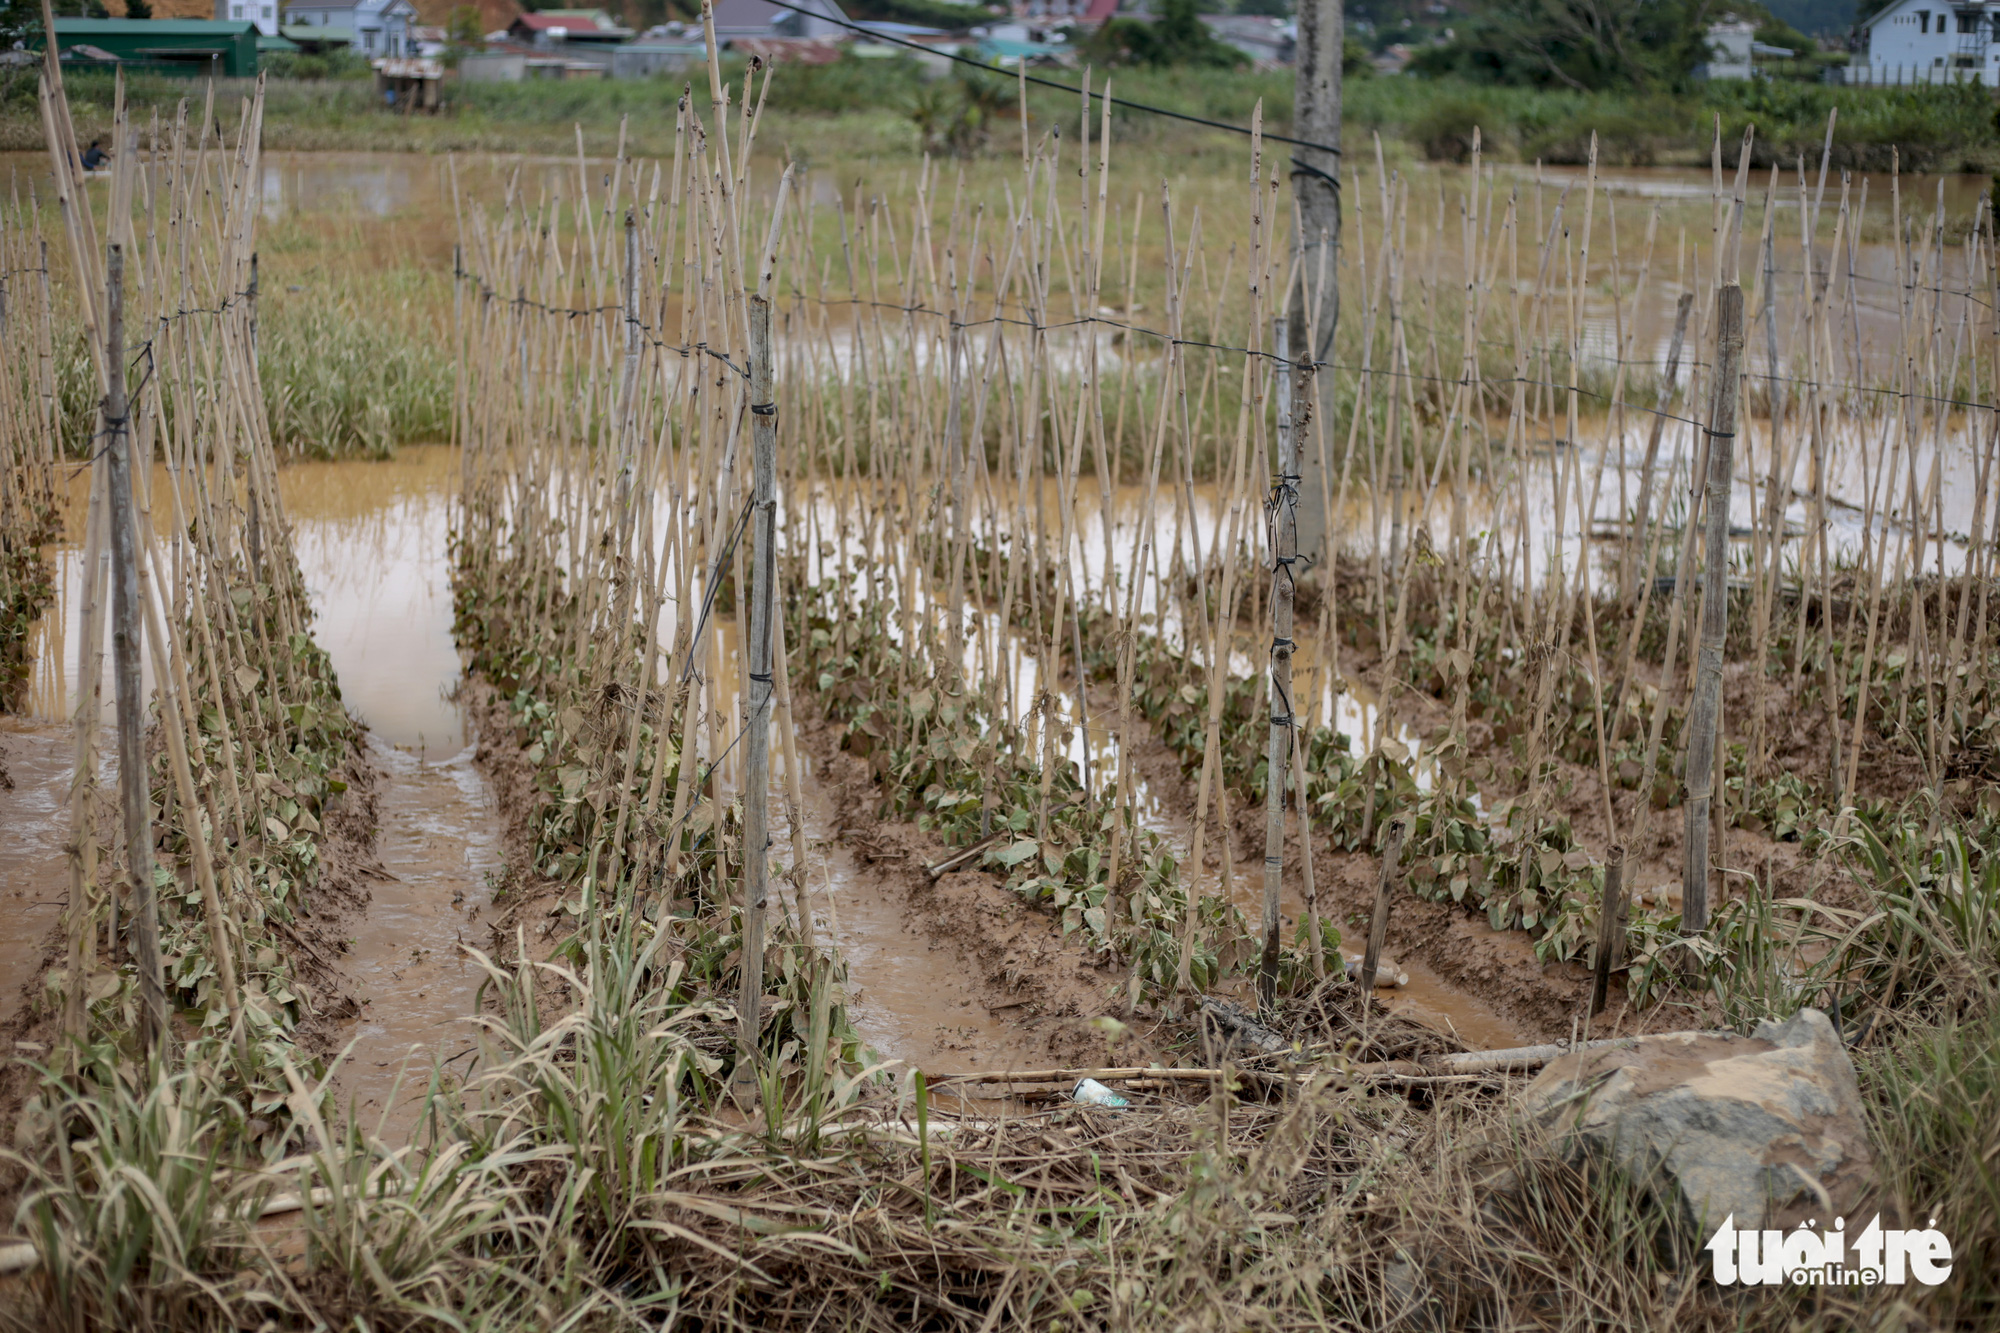 Rising water floods areas growing vegetables in Duc Trong District, Lam Dong Province, Vietnam, July 9, 2021. Photo: M. Vinh / Tuoi Tre